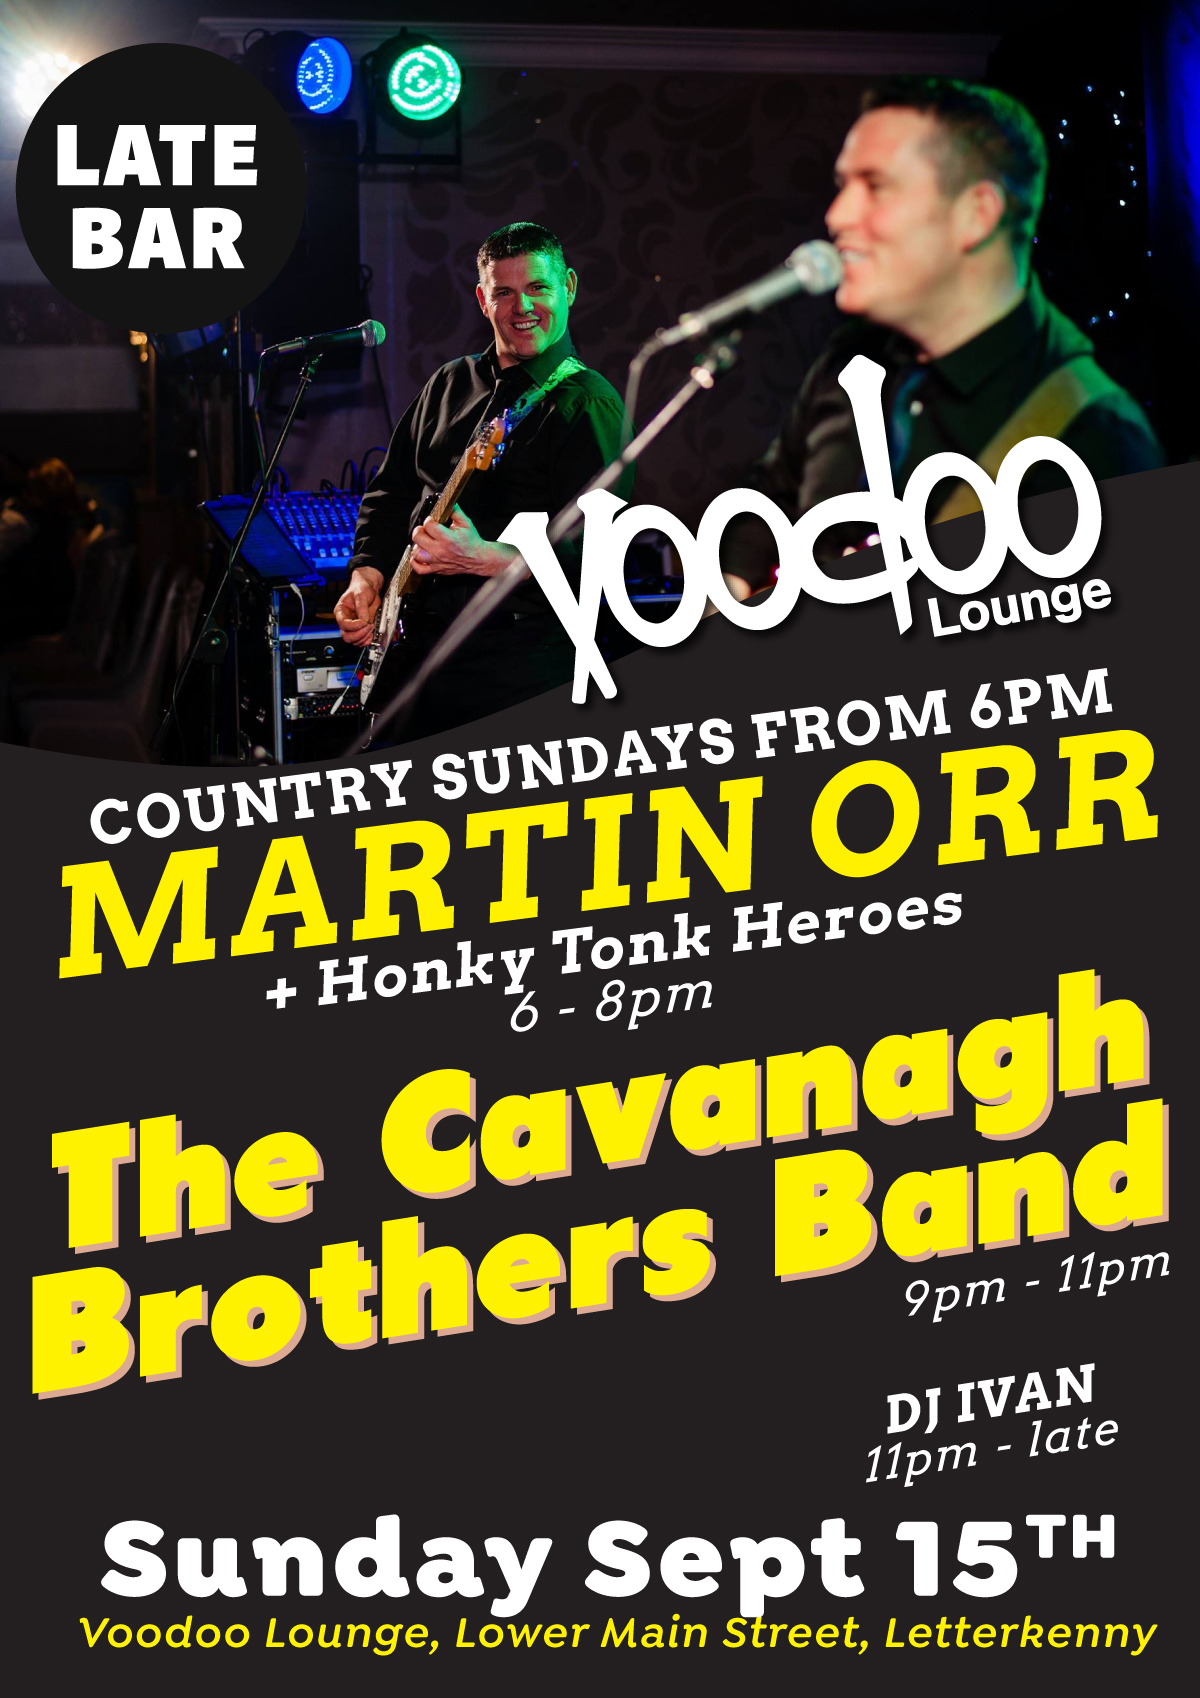 voodoo-venue---SUNDAY----martin-orr---The-Cavanagh-Brothers-Band---SUN-SEPT-15-2019.jpg